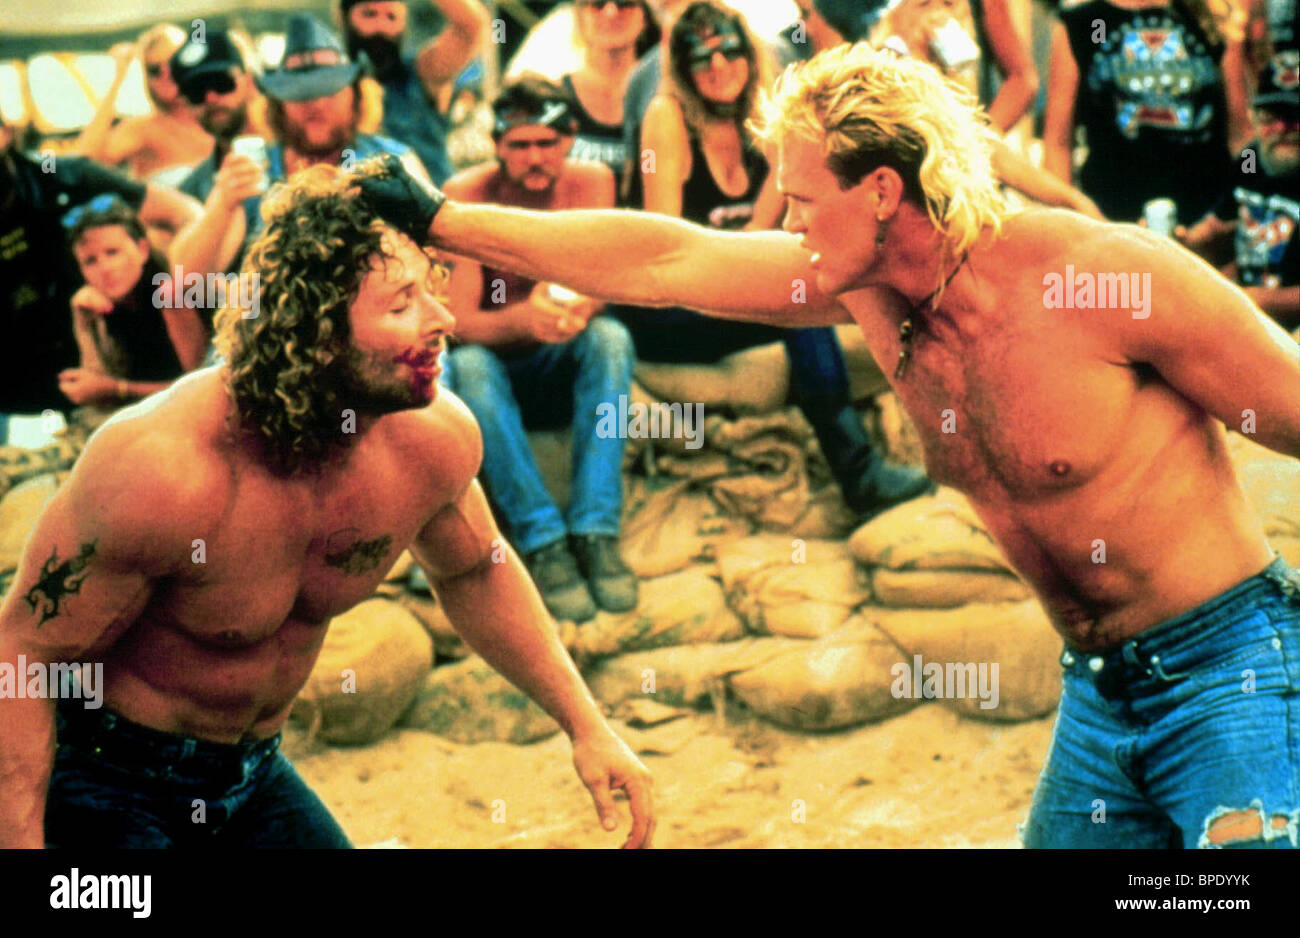 BRIAN BOSWORTH STONE COLD (1991 Stock Photo: 31040119 - Alamy